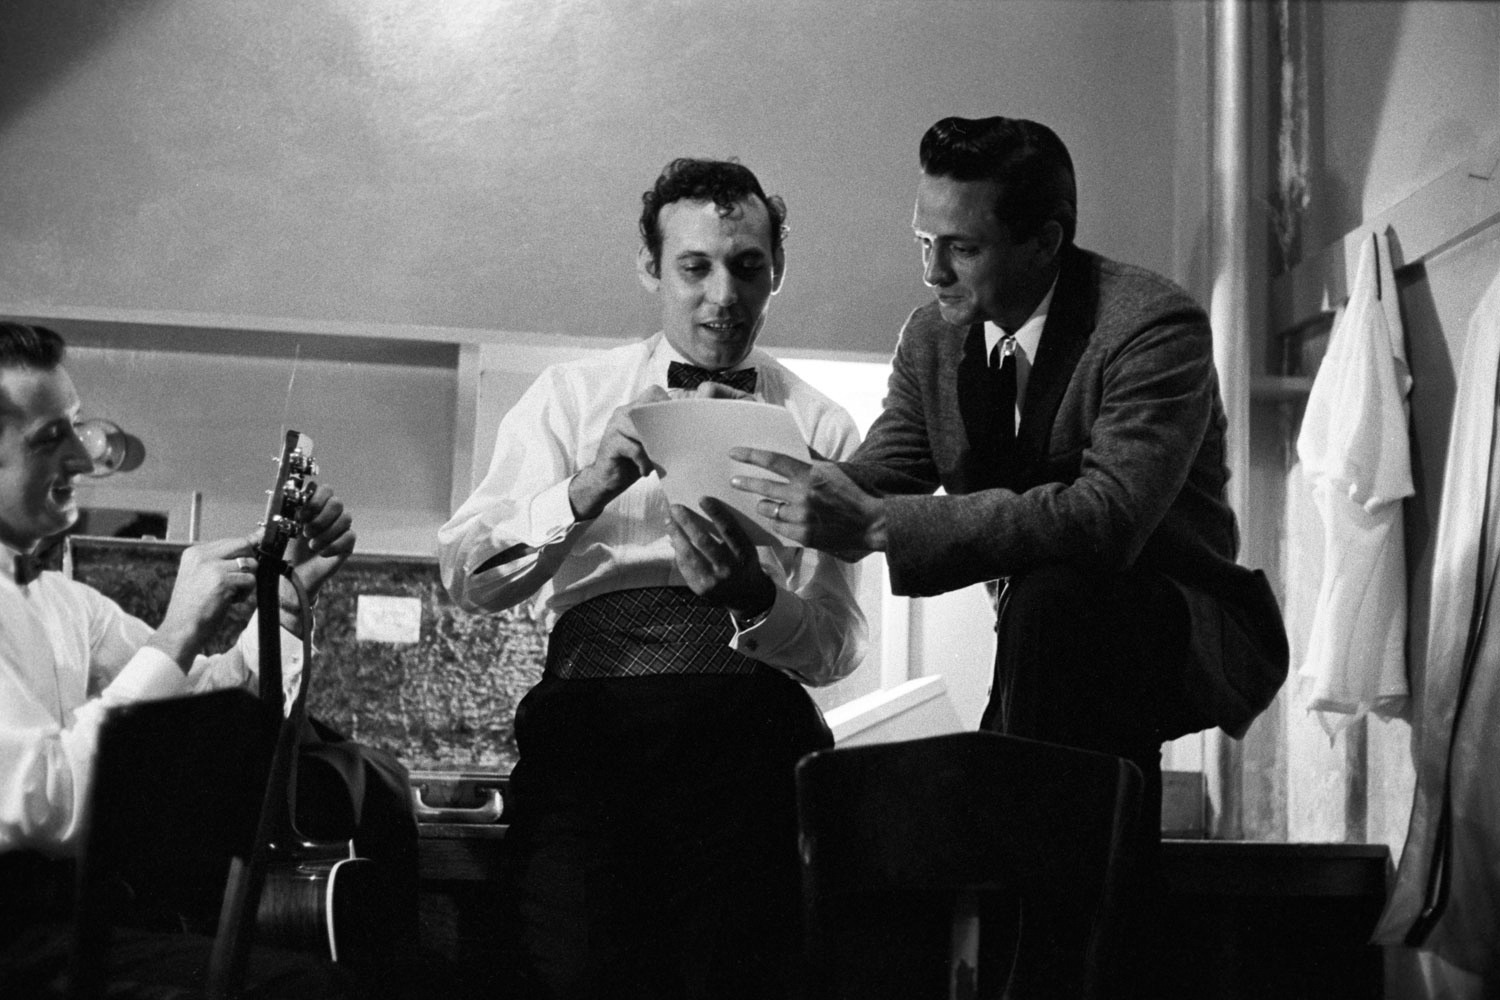 Backstage with Carl Perkins, May 1959.